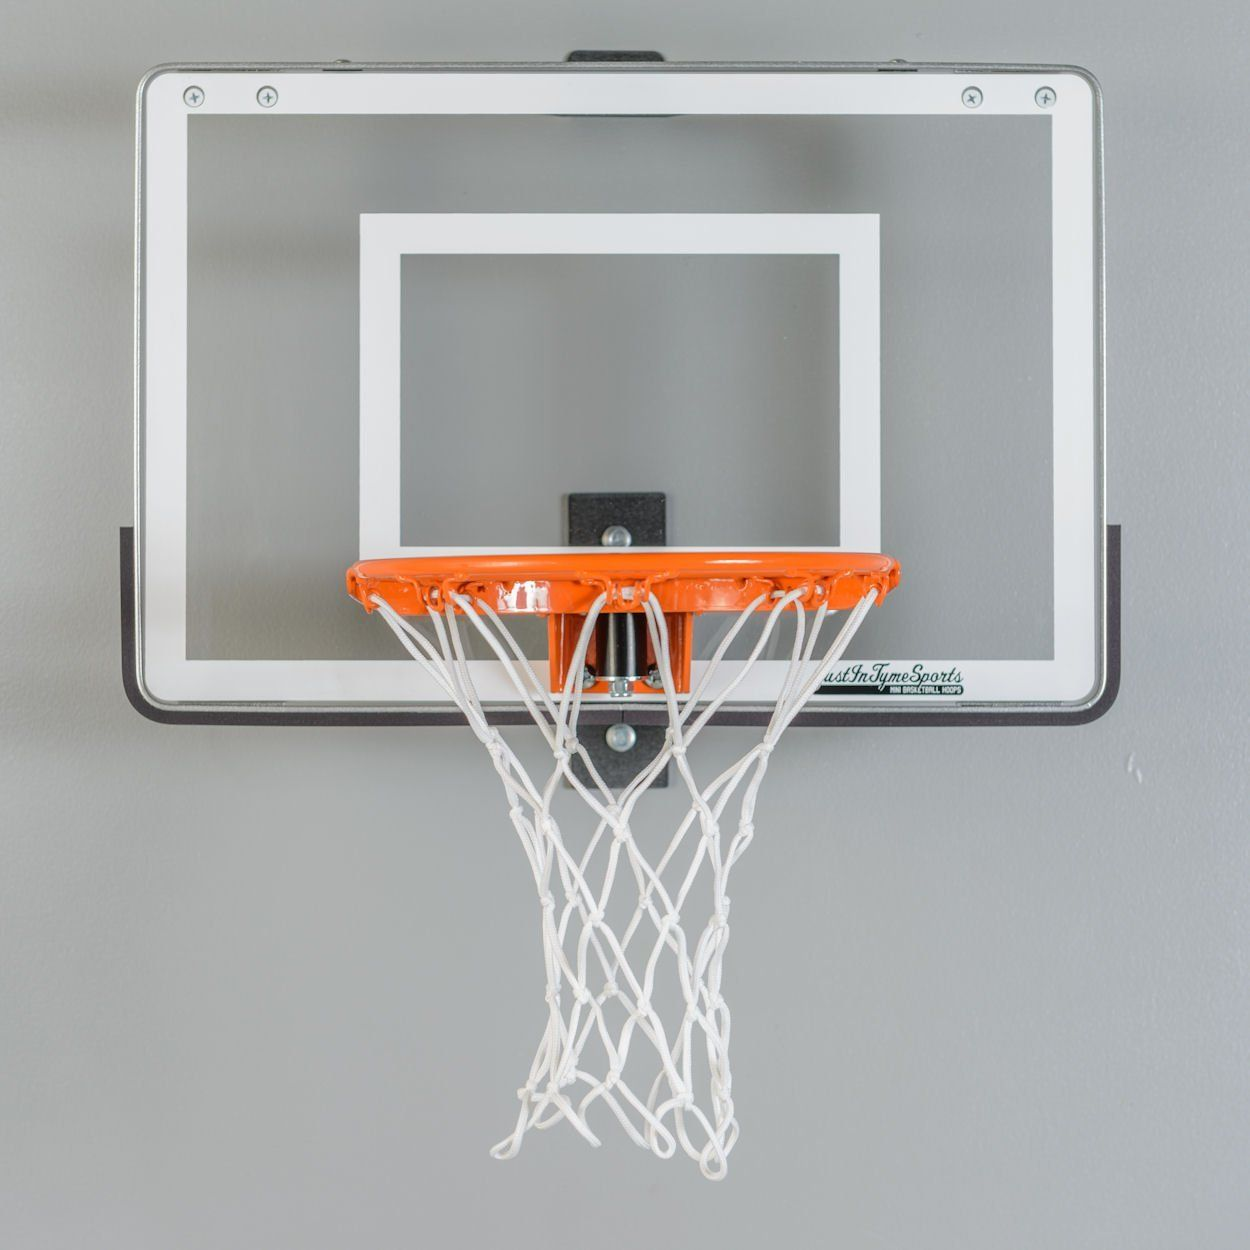 Amazon Com Wall Mounted Mini Basketball Hoop Mini Pro 1 0 Wall Mount Basketball Backboards Sports Mini Basketball Hoop Mini Basketballs Basketball Hoop